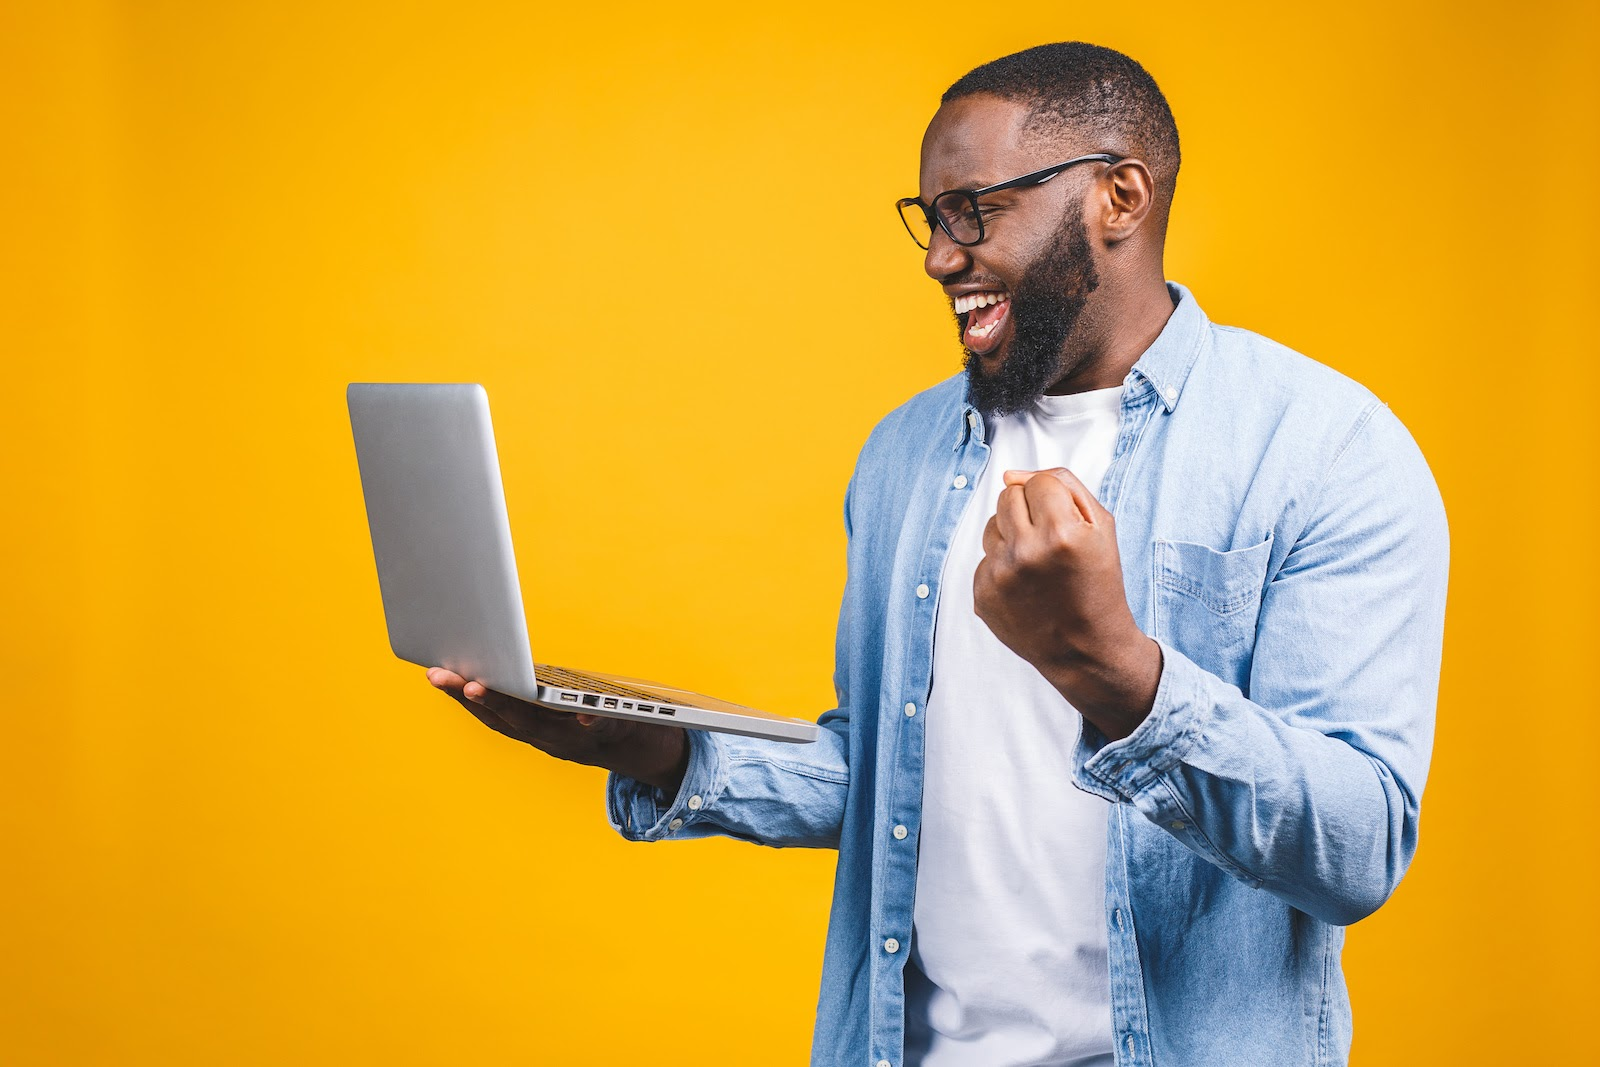 A man is excited about Kudos he got while working on his laptop with remote work software